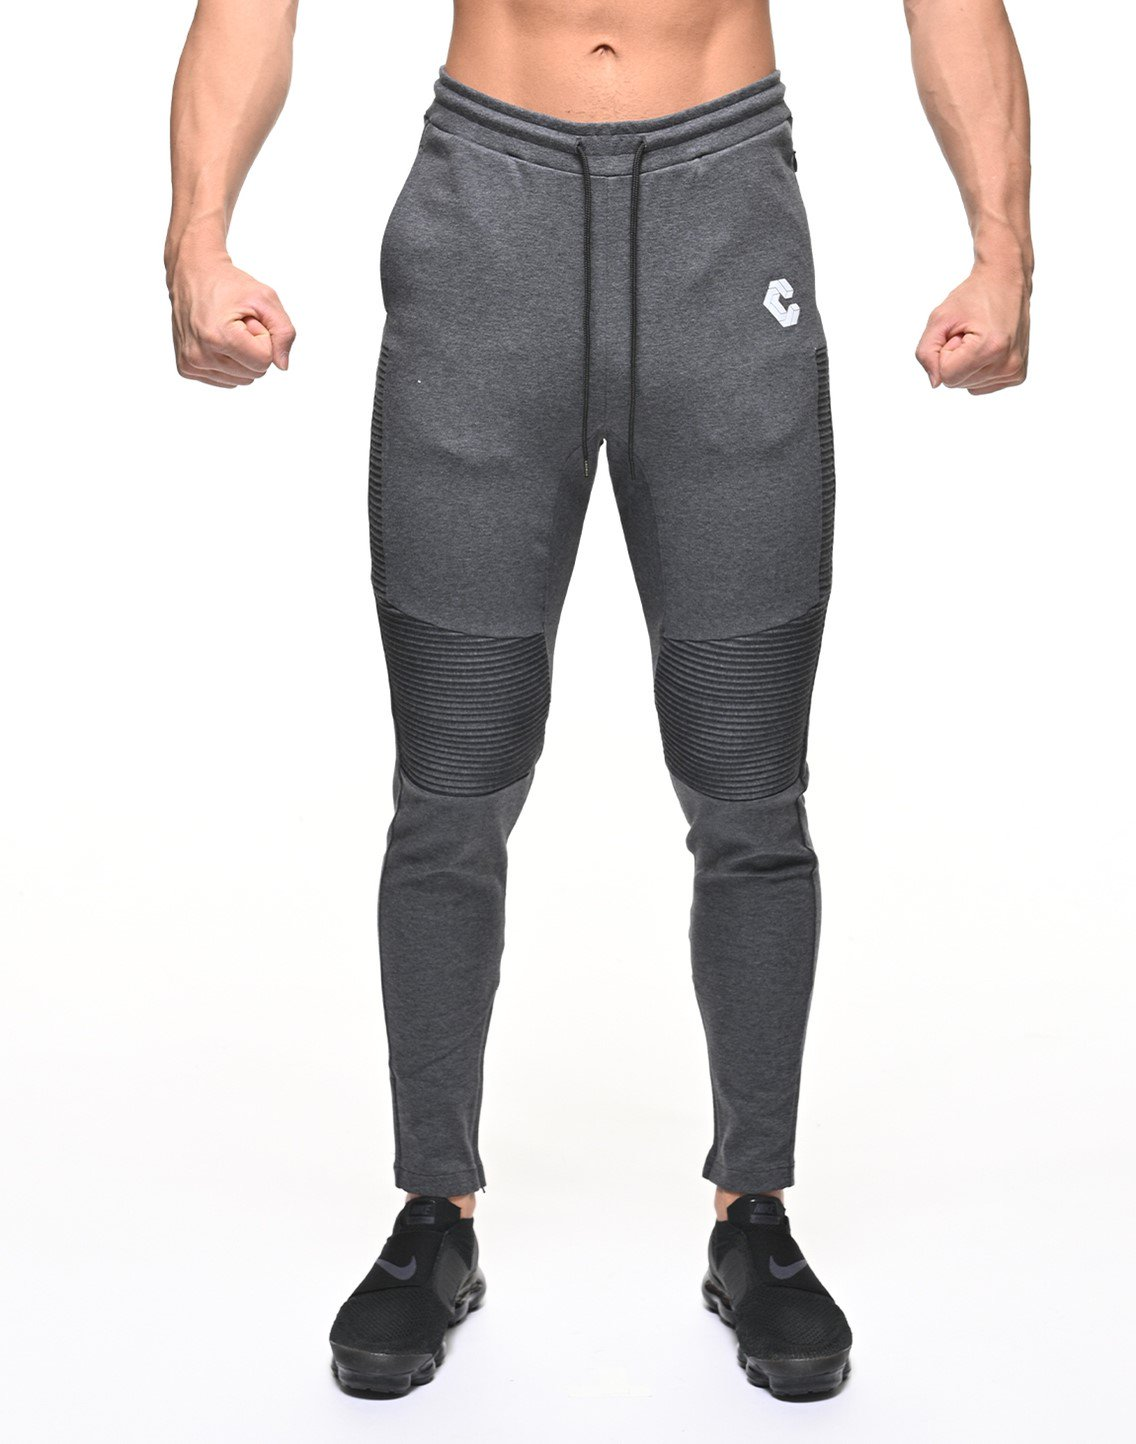 <img class='new_mark_img1' src='https://img.shop-pro.jp/img/new/icons1.gif' style='border:none;display:inline;margin:0px;padding:0px;width:auto;' />CRONOS BIKER PANTS【GRAY】